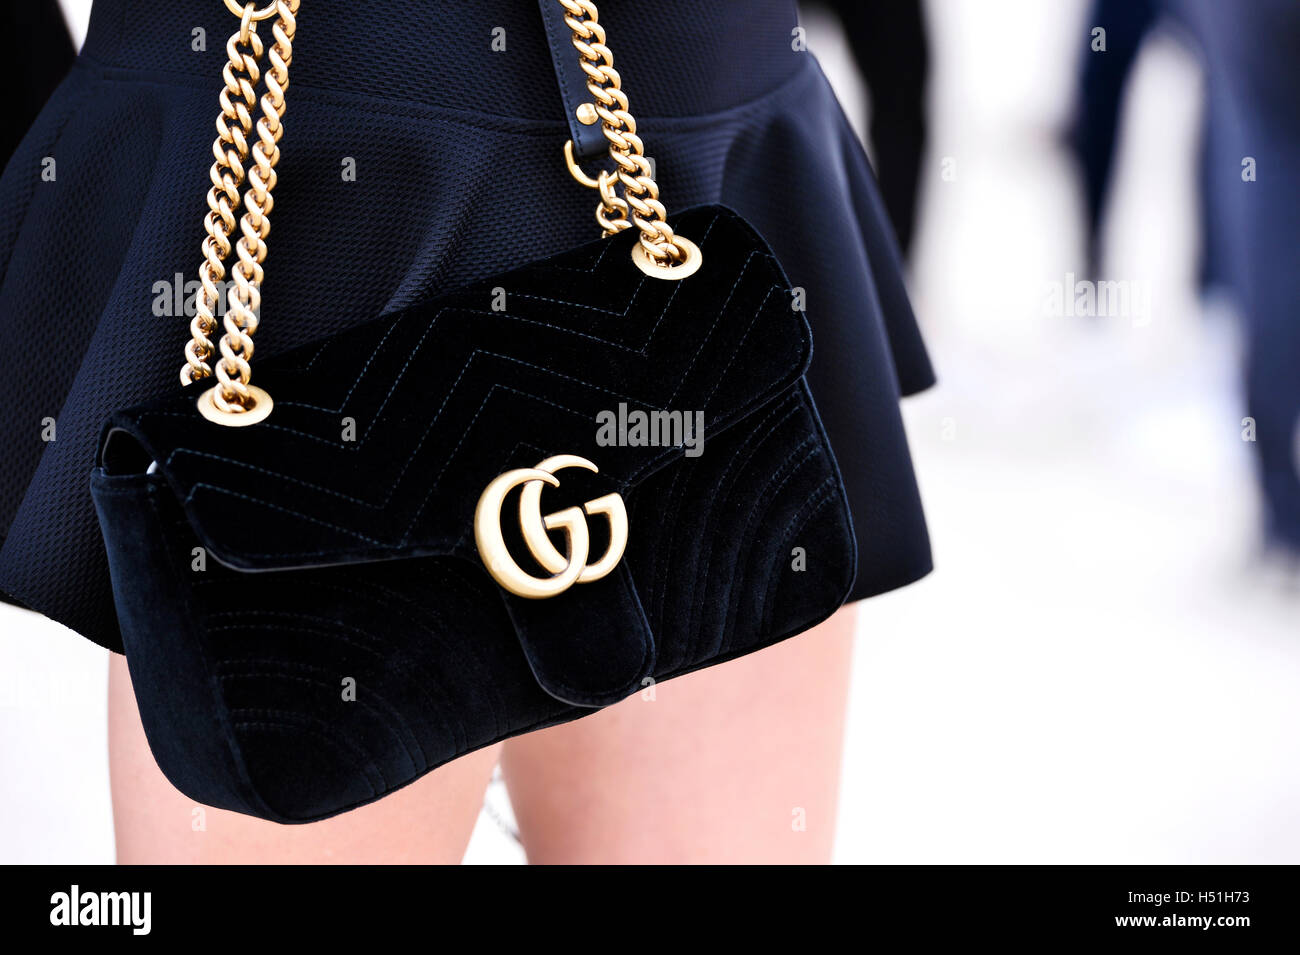 c57ebea6 Gucci bag at Paris Fashion Week 2016, RTW S/S 2017 Stock Photo ...